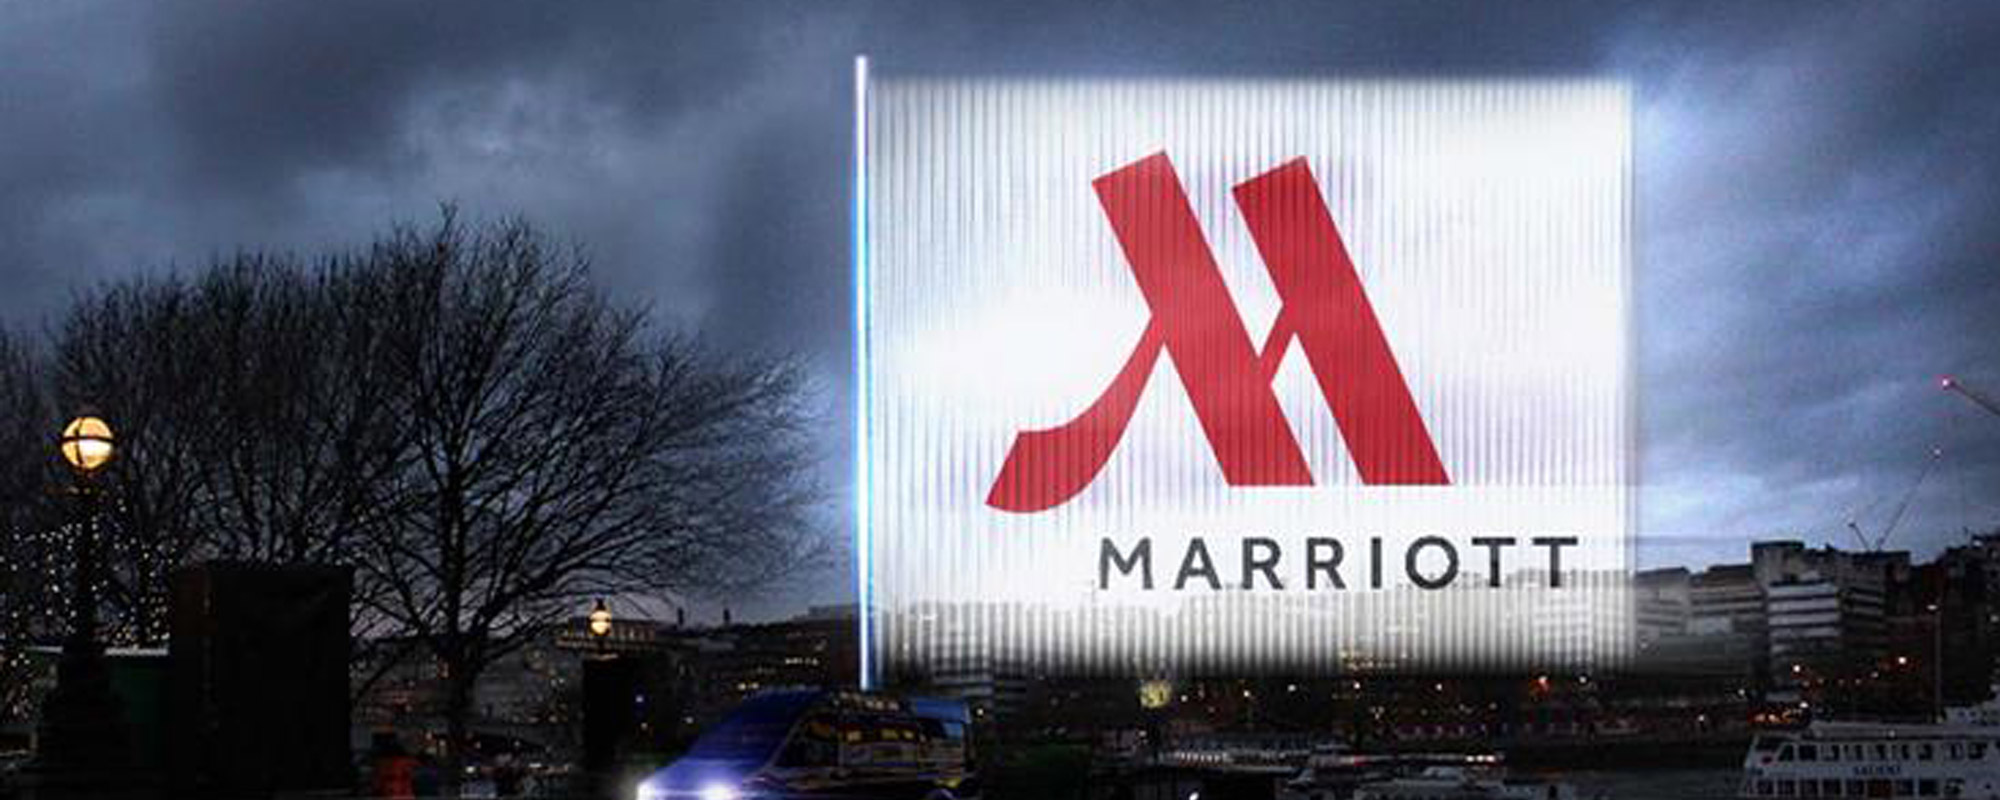 Marriott Hotels Light Up the Sky with First Use of 'Echo' Outdoor Ad Technology